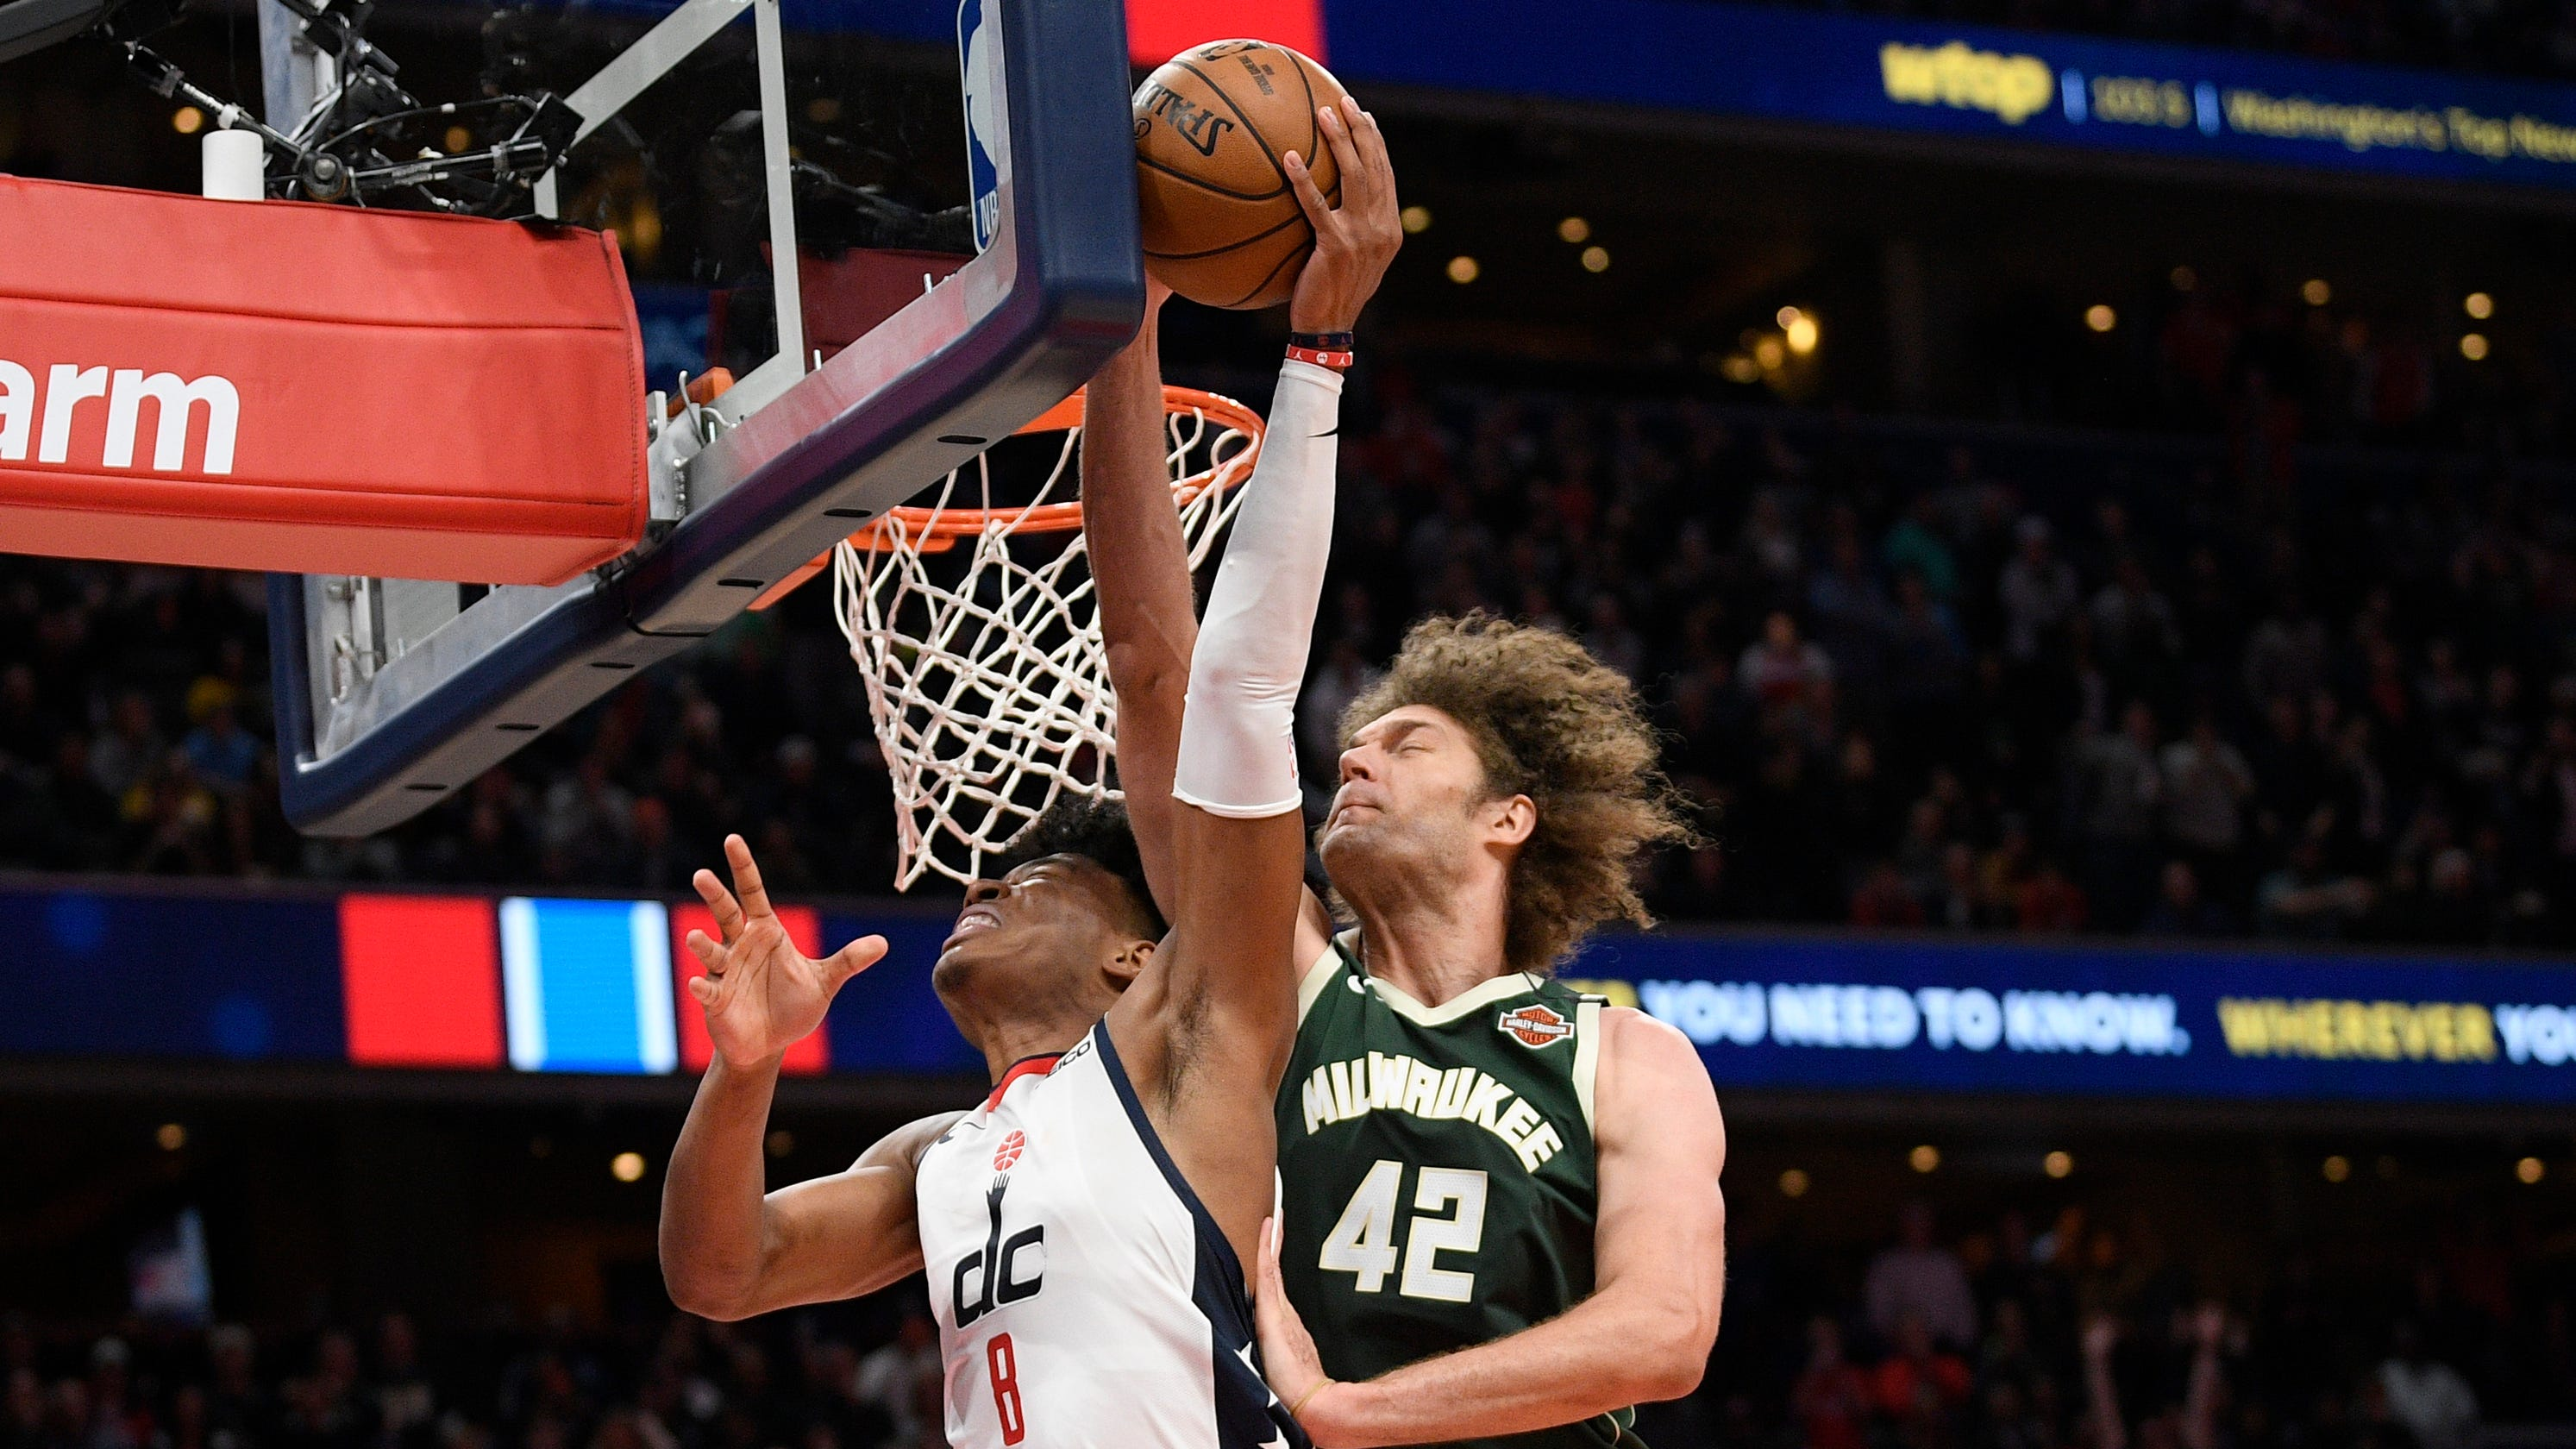 Eleven memorable plays during the 2019-20 Bucks season